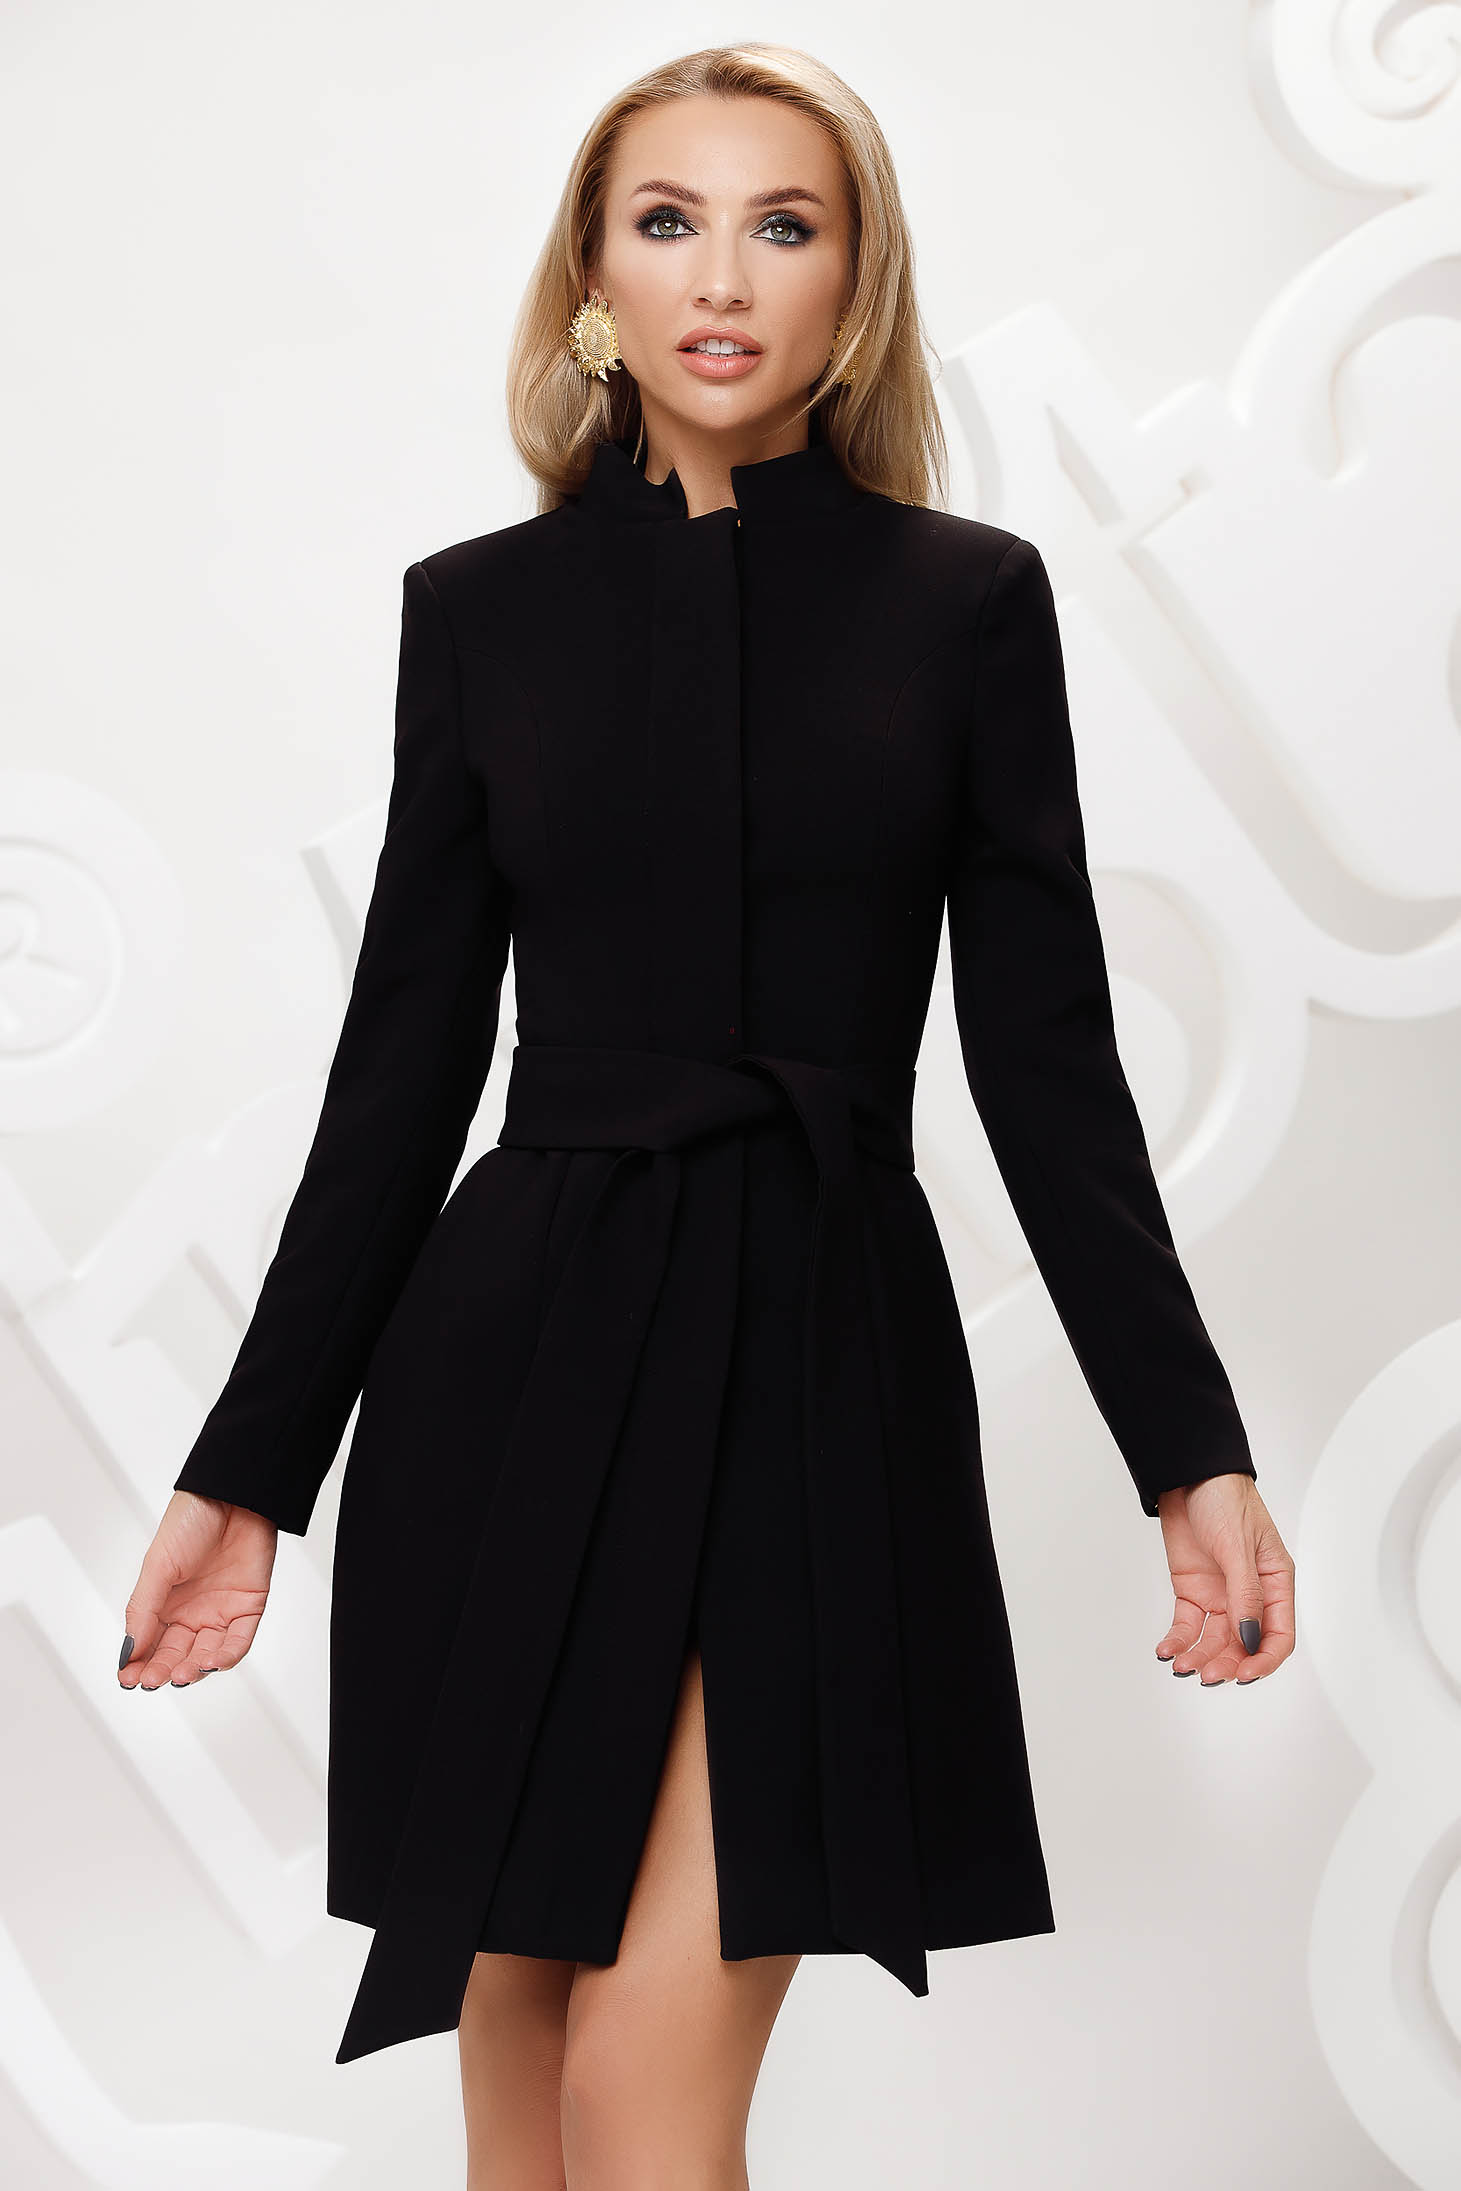 Cloche with inside lining accessorized with tied waistband elegant with bow black overcoat